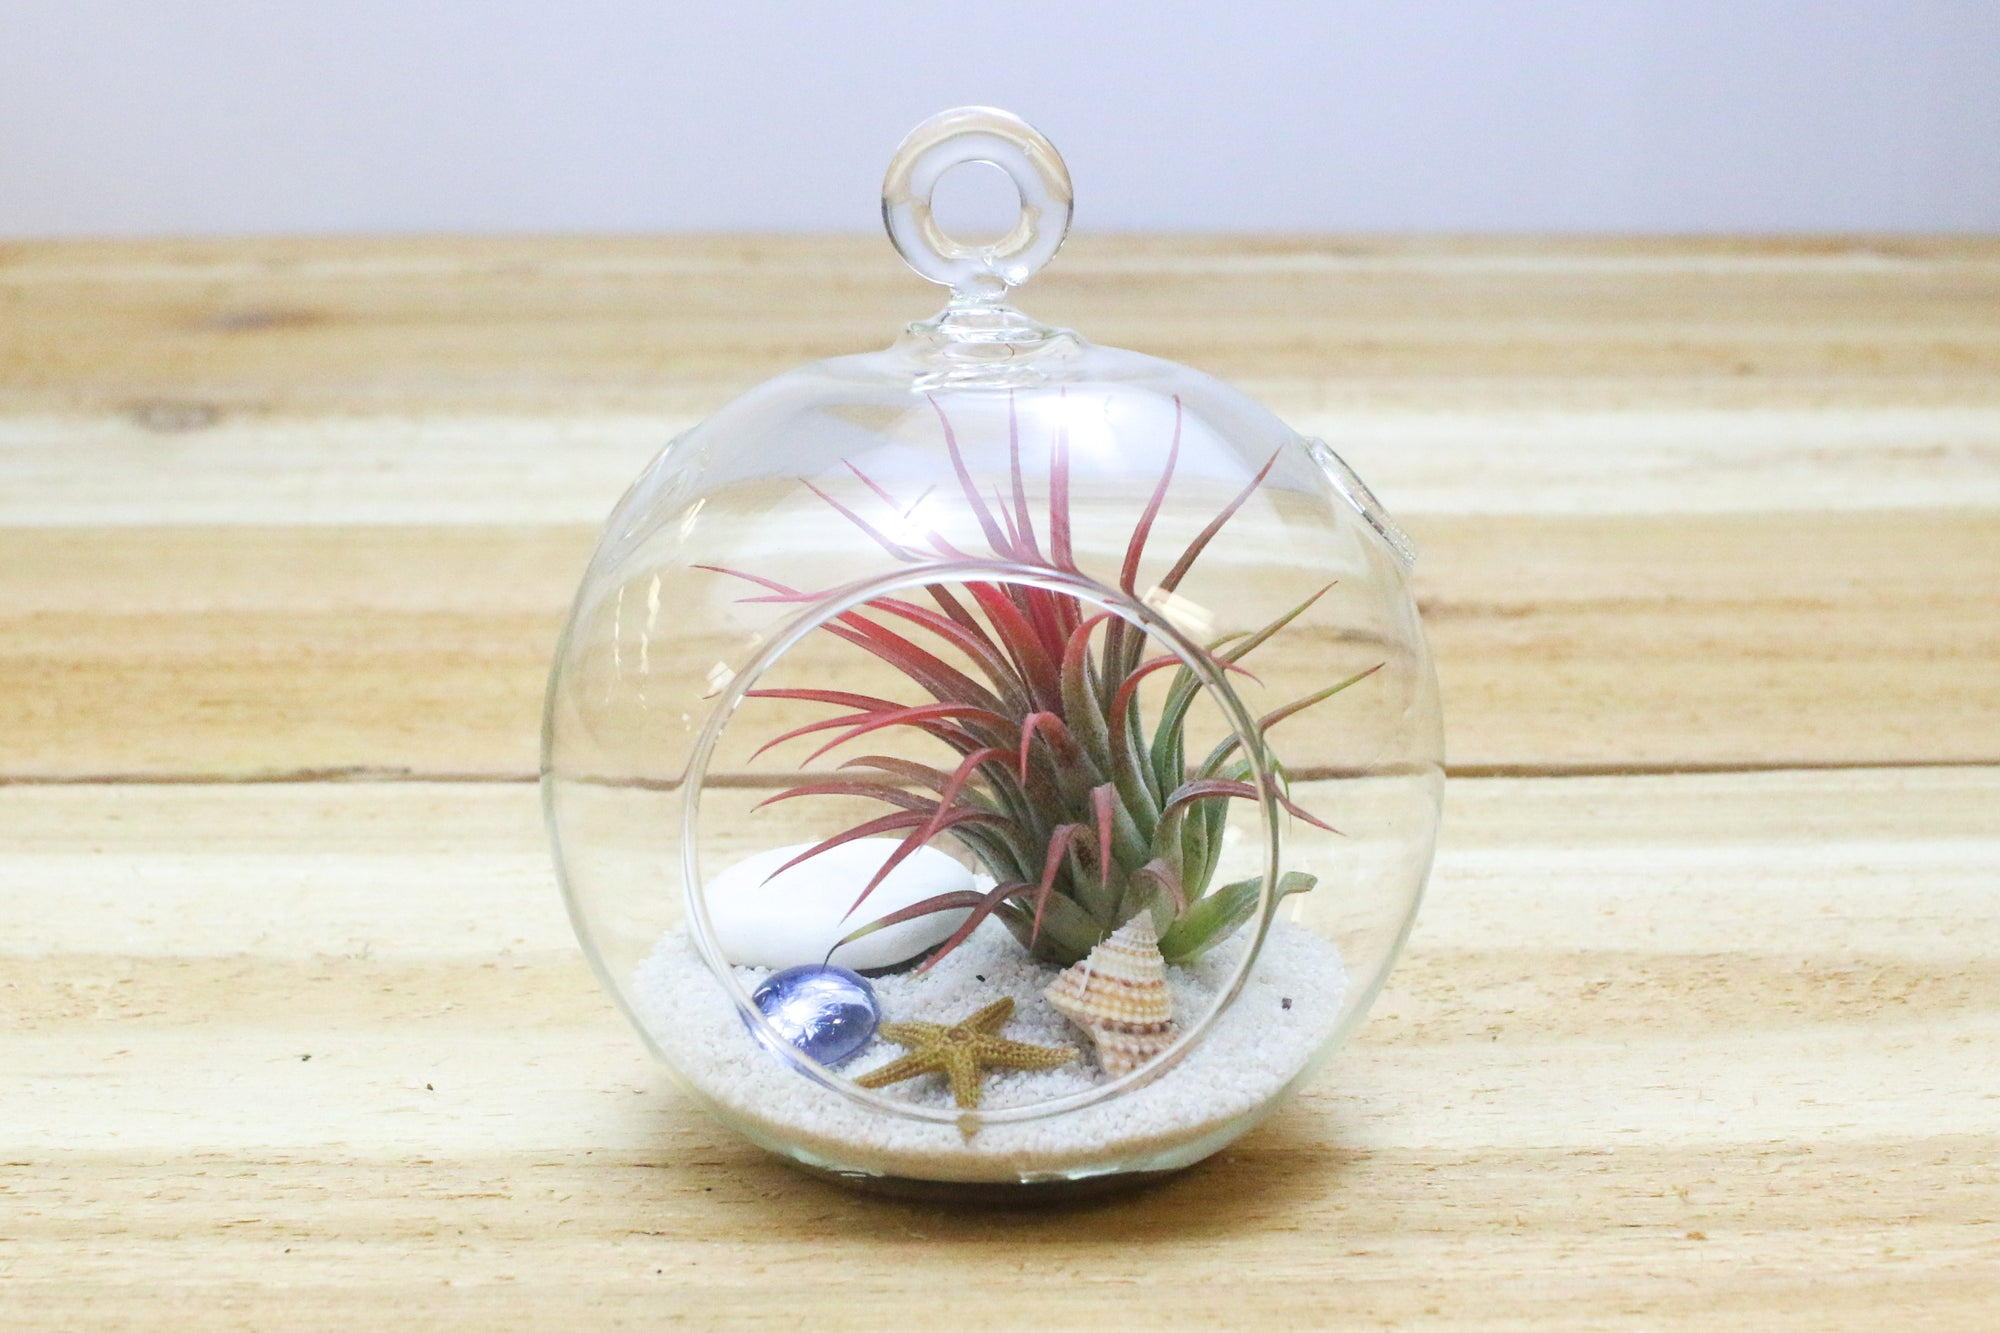 Wholesale: Flat Bottom Hanging Globe Terrarium with White Sand and Air Plant [Min Order 12]